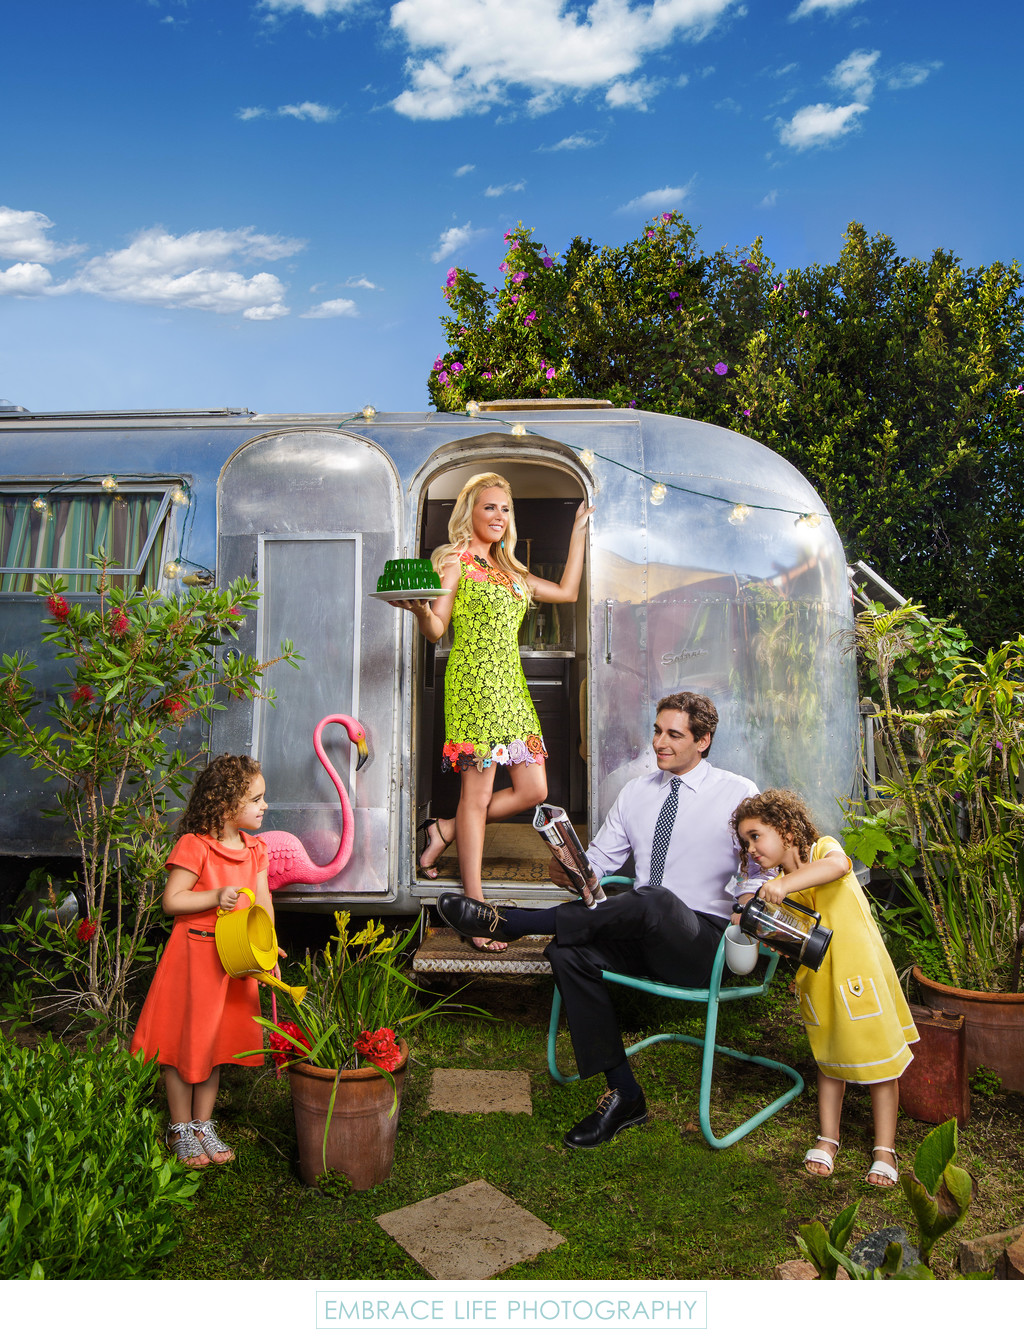 Colorful Family Portrait With Airstream Trailer